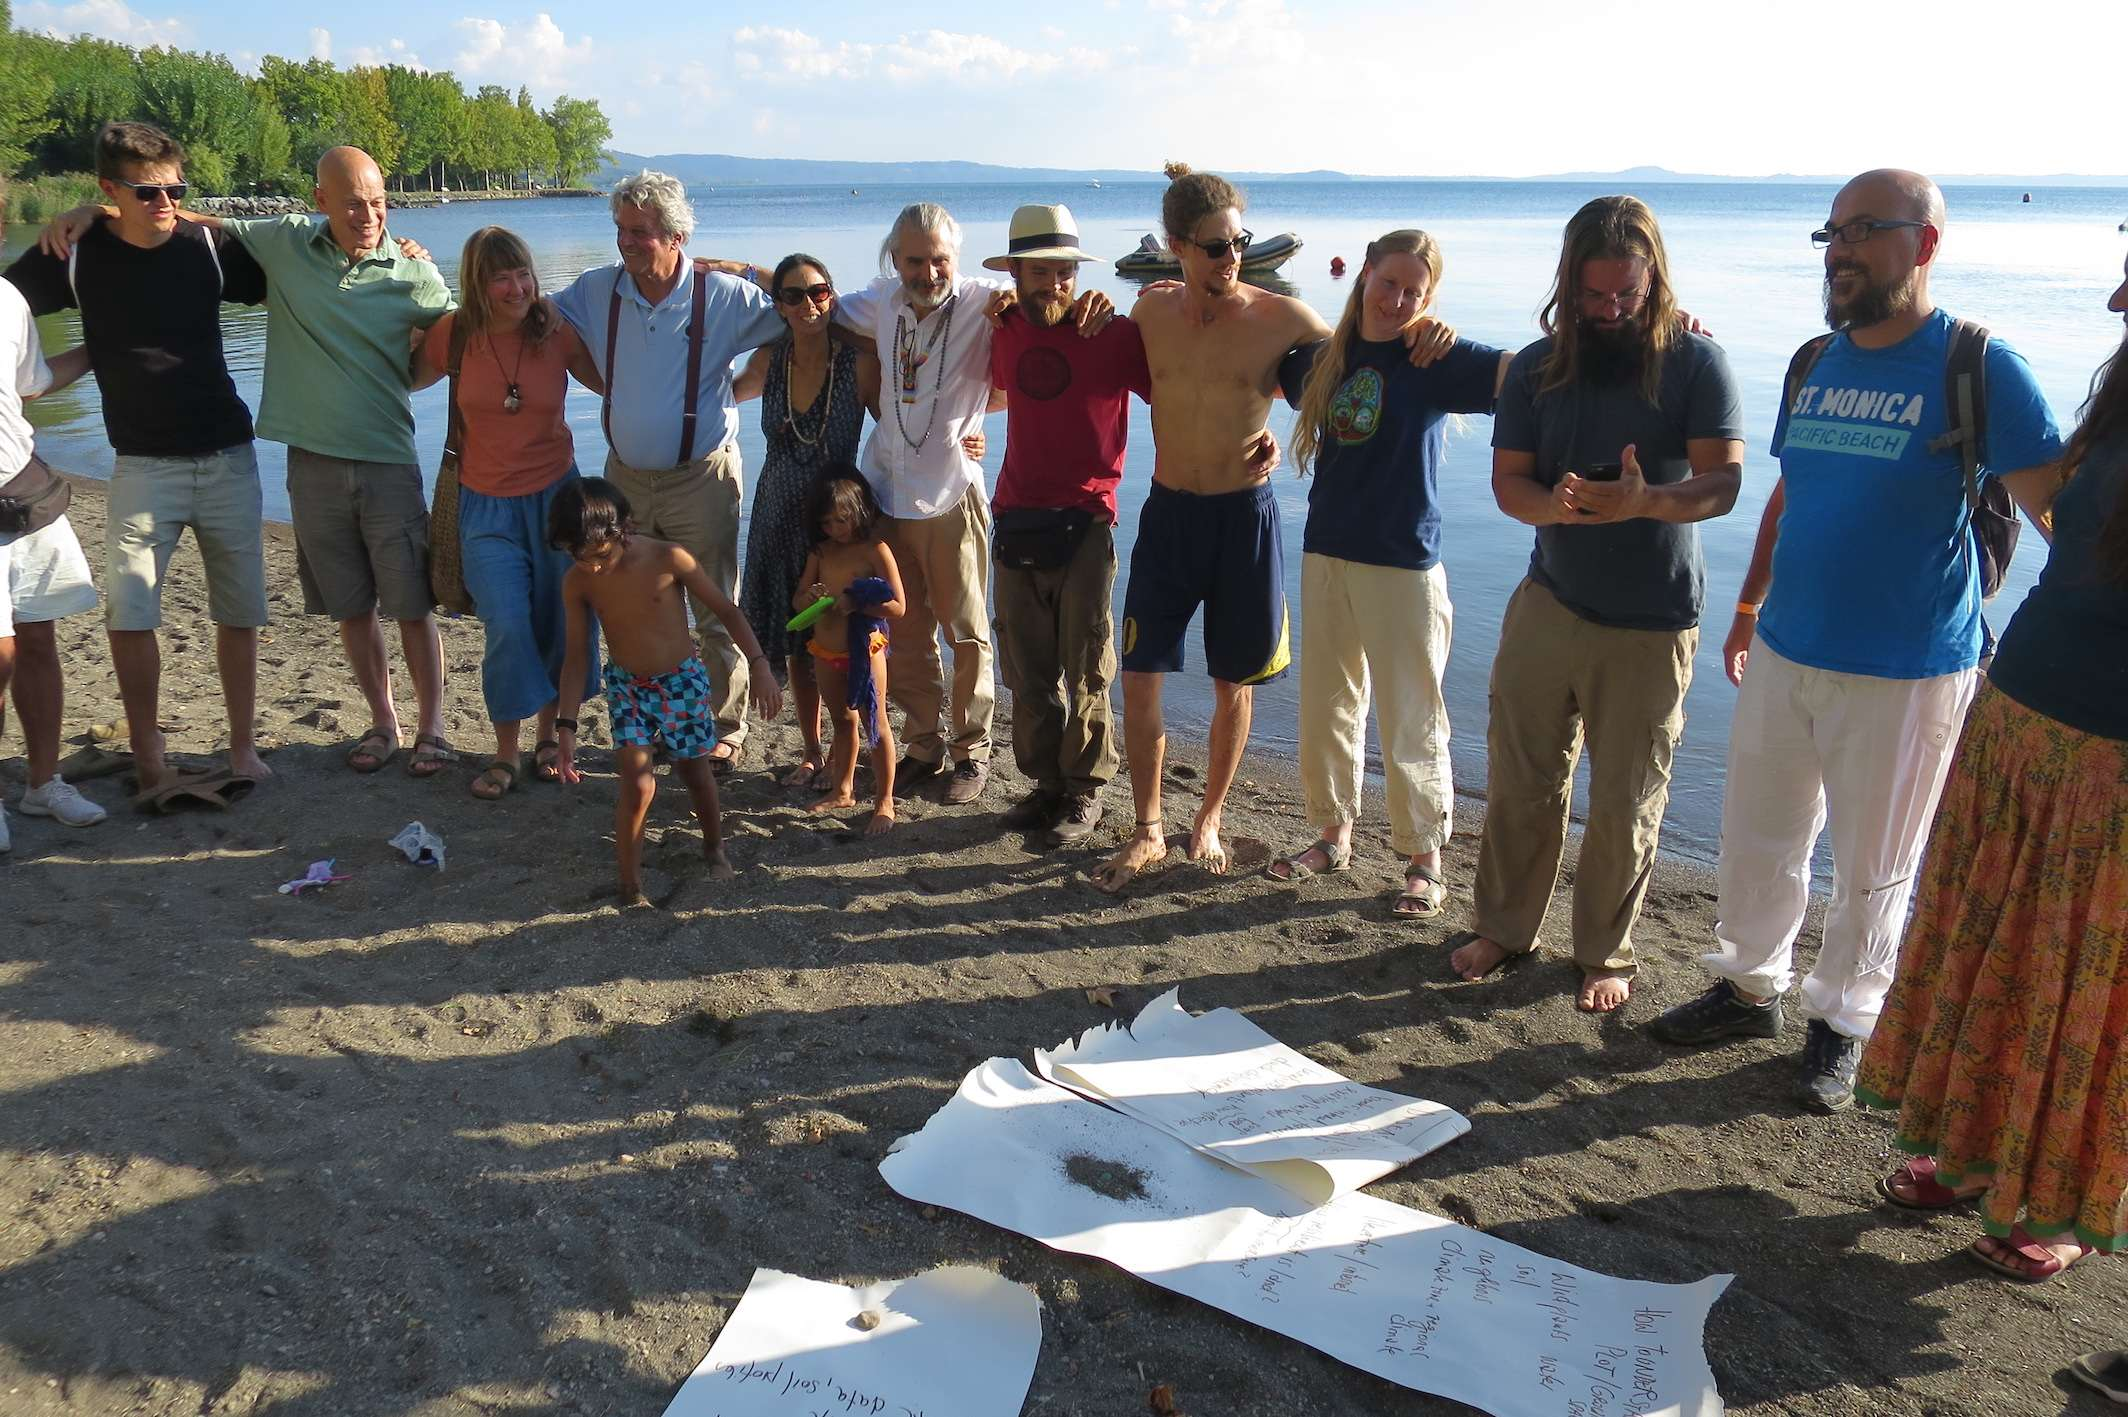 Creating a seed - a circle of people on the beach at the European Permaculture Convergence, held at the beuatiful Bolsena, Italy